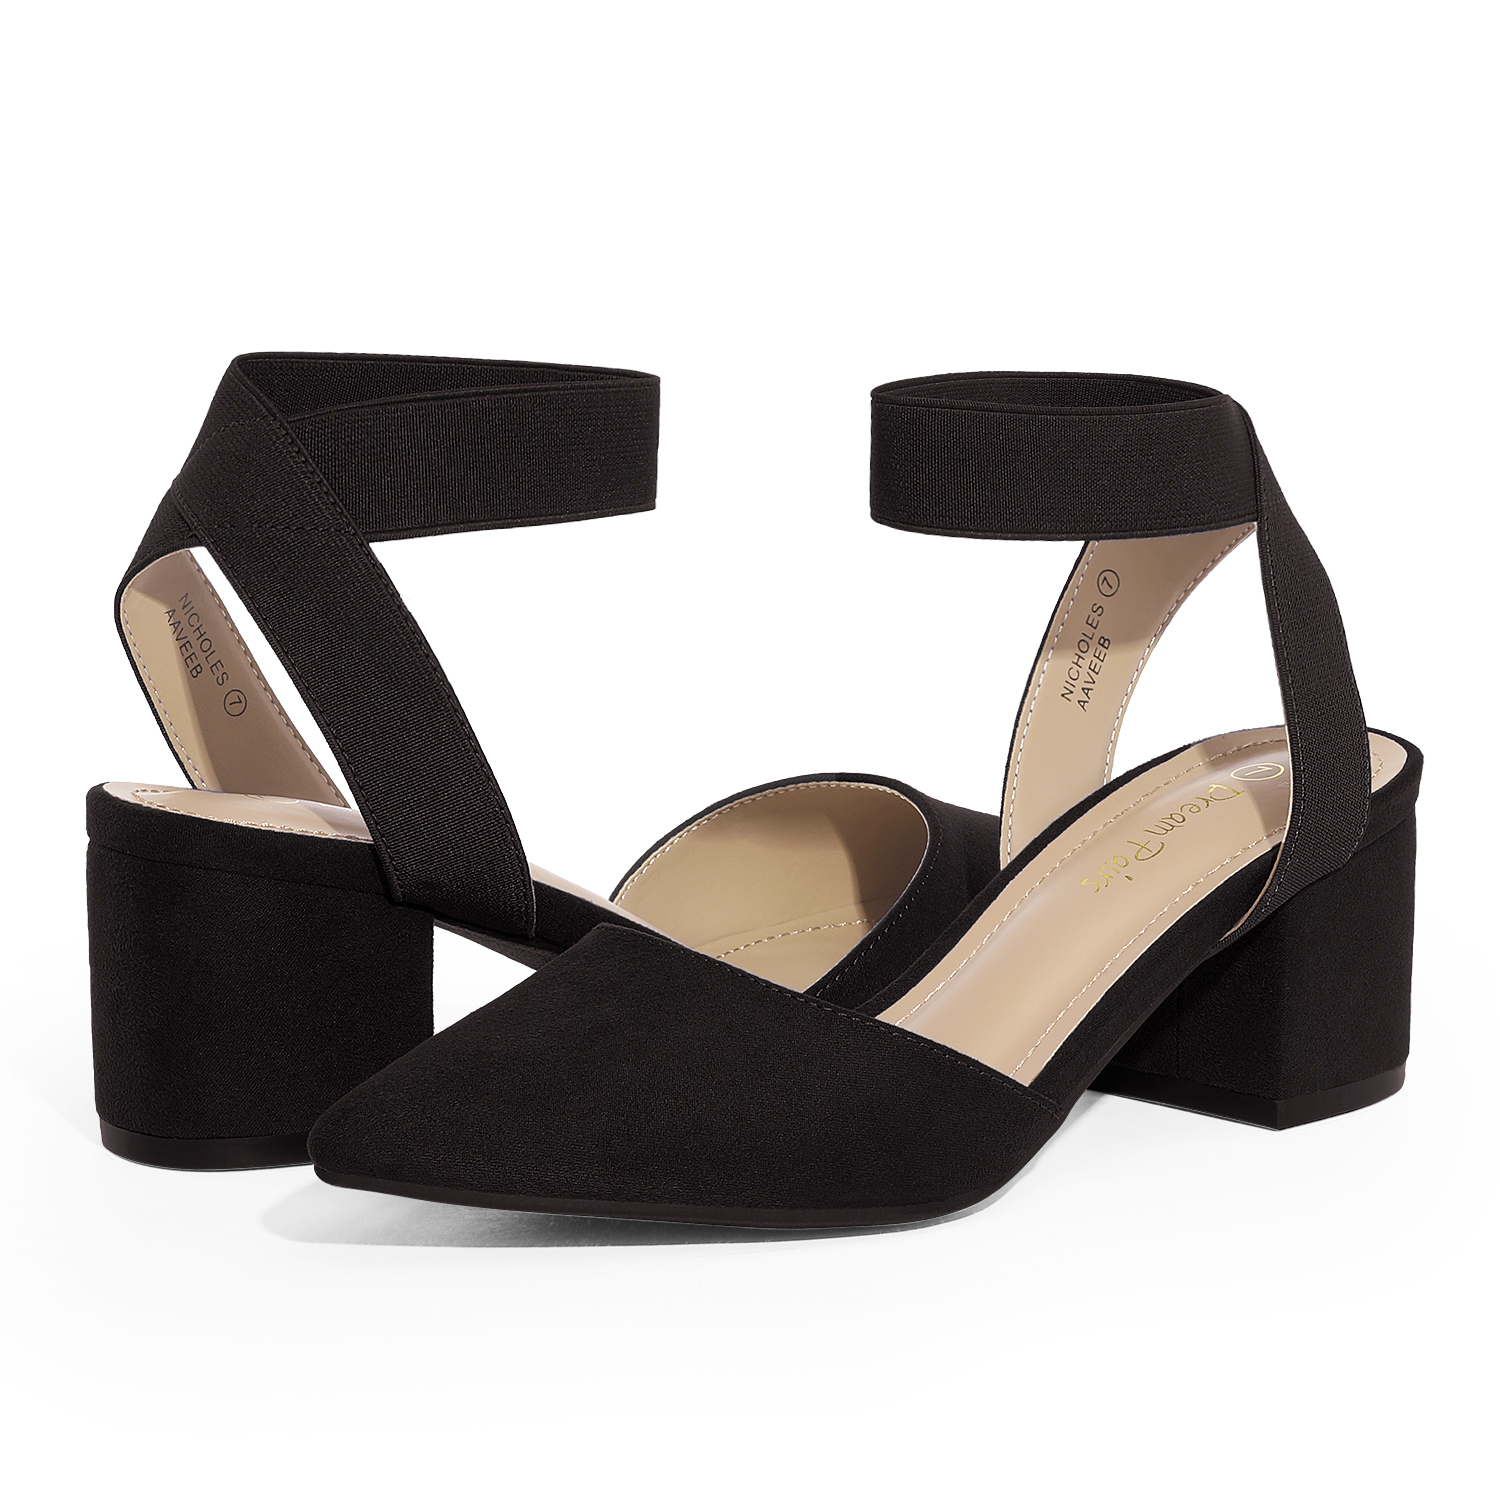 thumbnail 9 - Women-039-s-Elastic-Ankle-Strap-Pointed-Toe-Pump-Shoes-Low-Chunky-Heel-Dress-Pumps